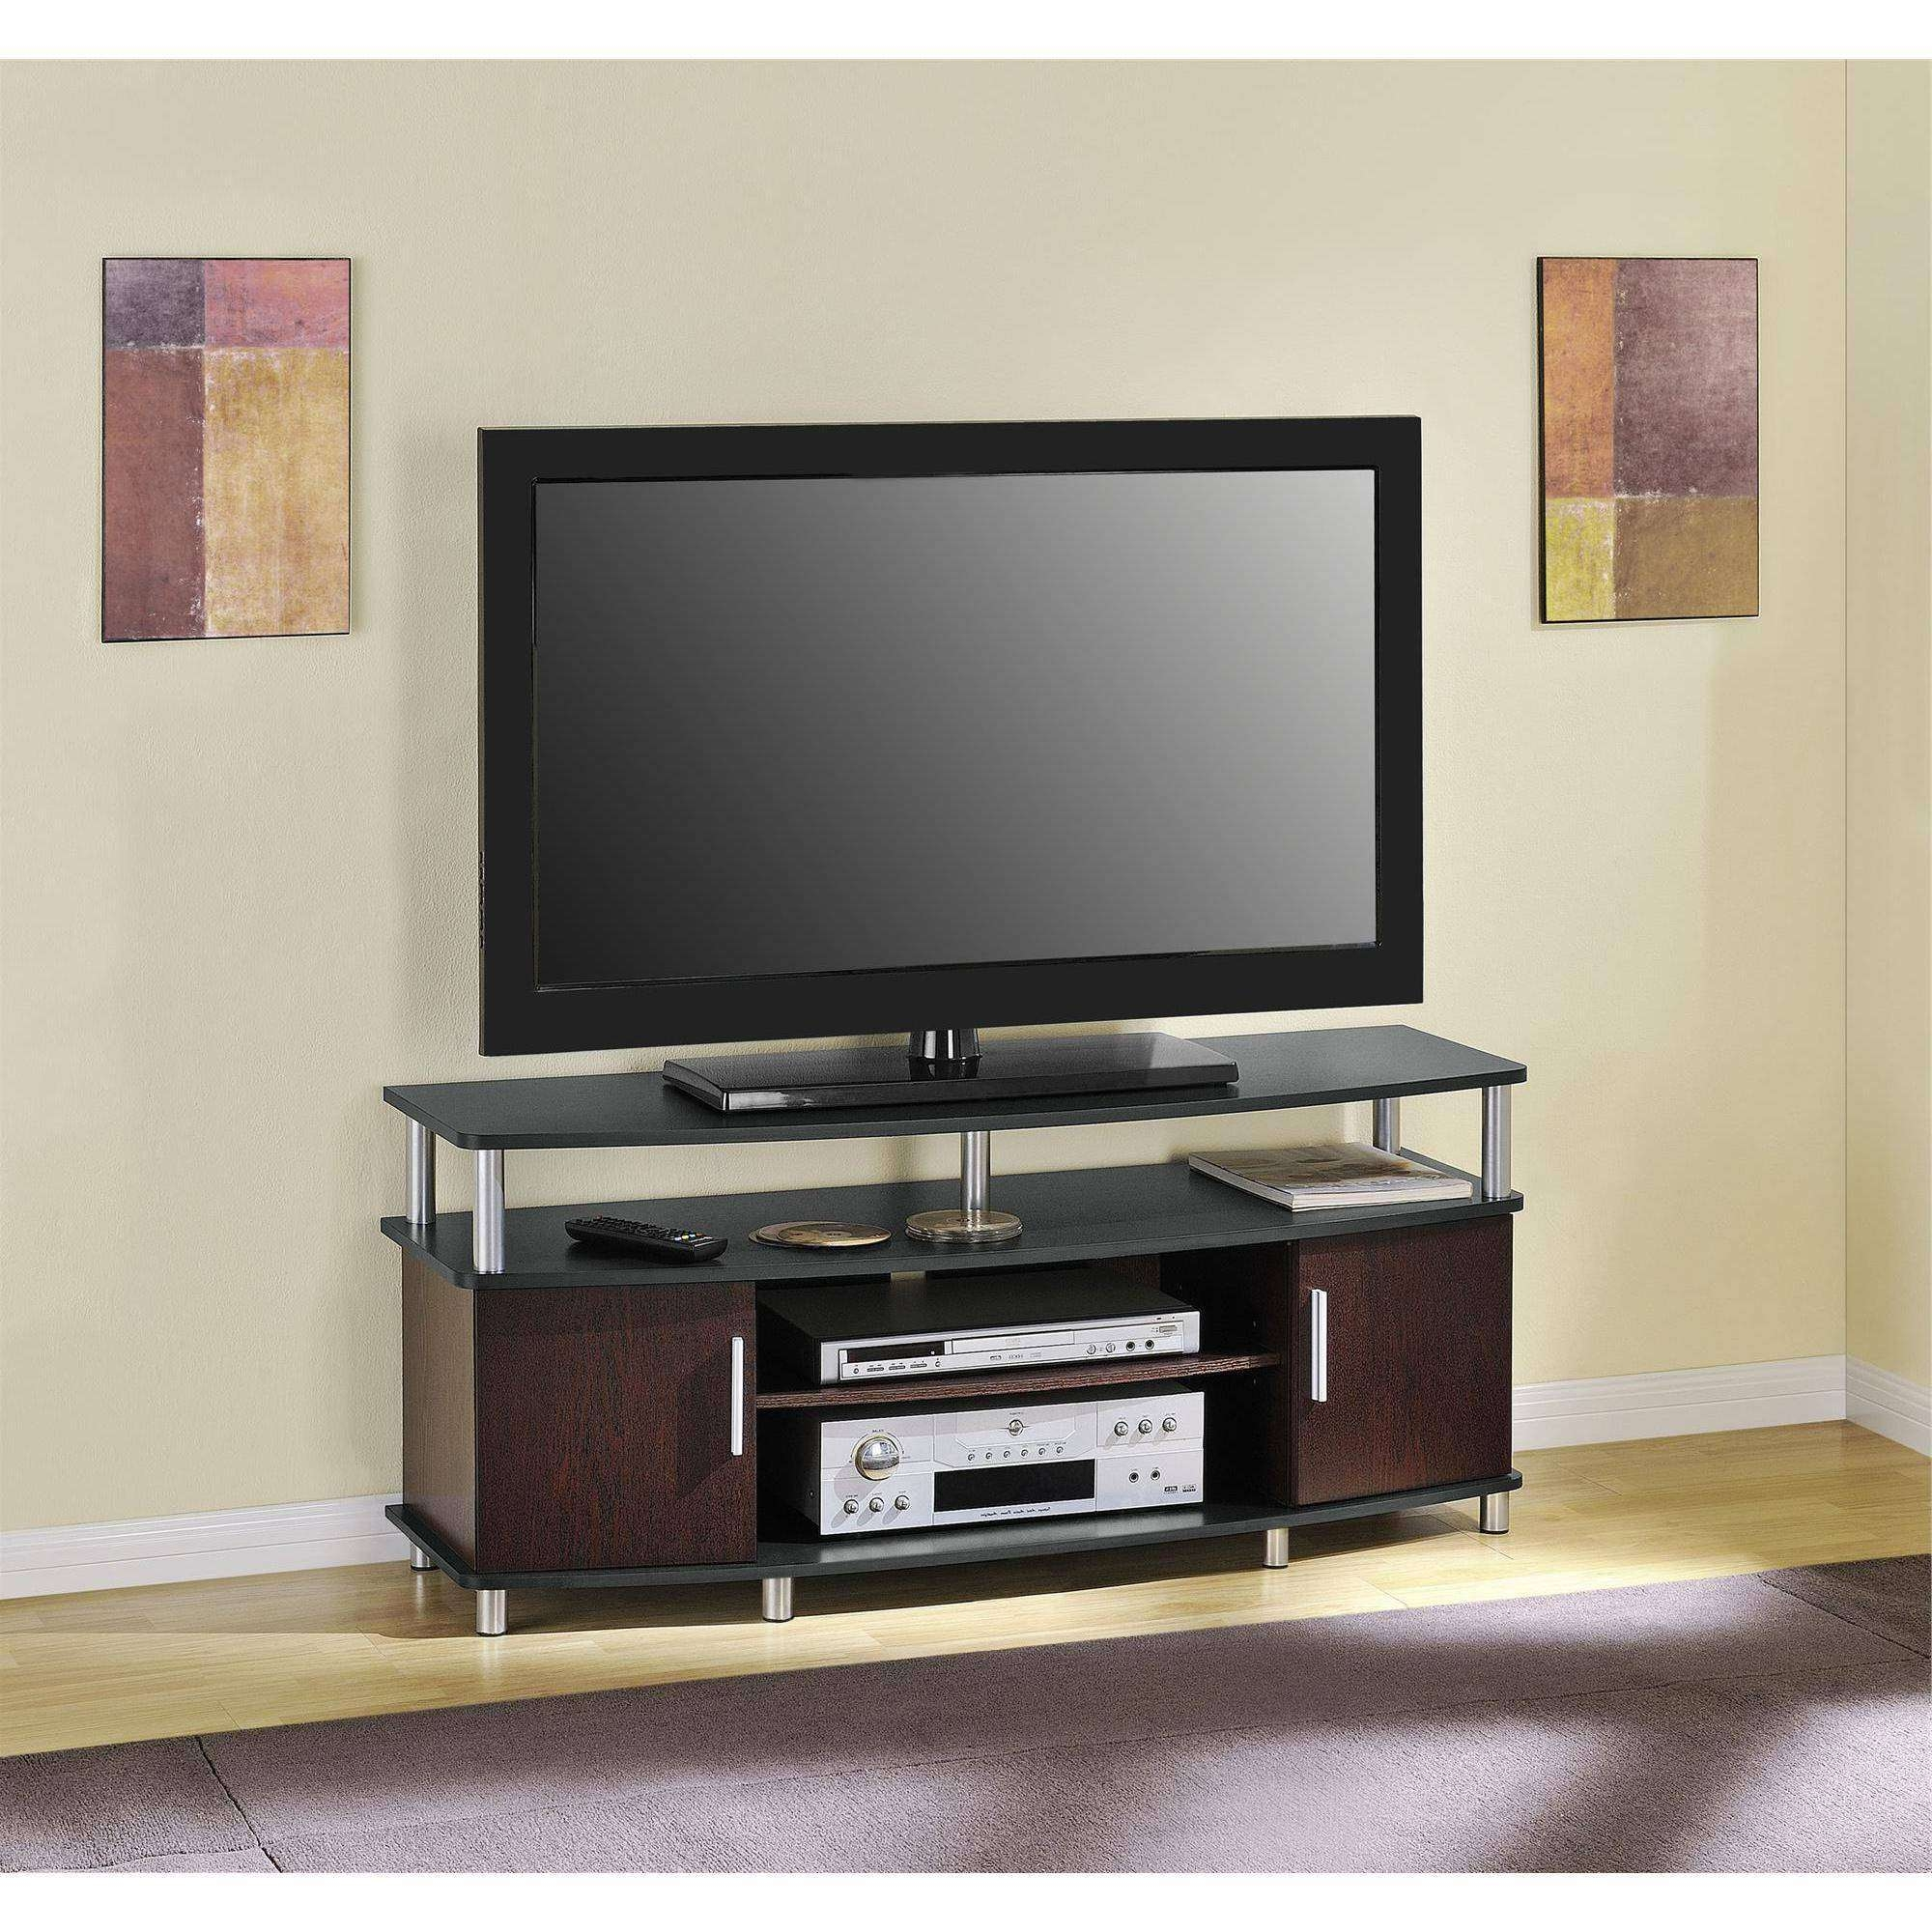 Fancy Tv Stands For 60 Inch Flat Screens 50 On Modern Home Decor Intended For Modern 60 Inch Tv Stands (View 10 of 20)